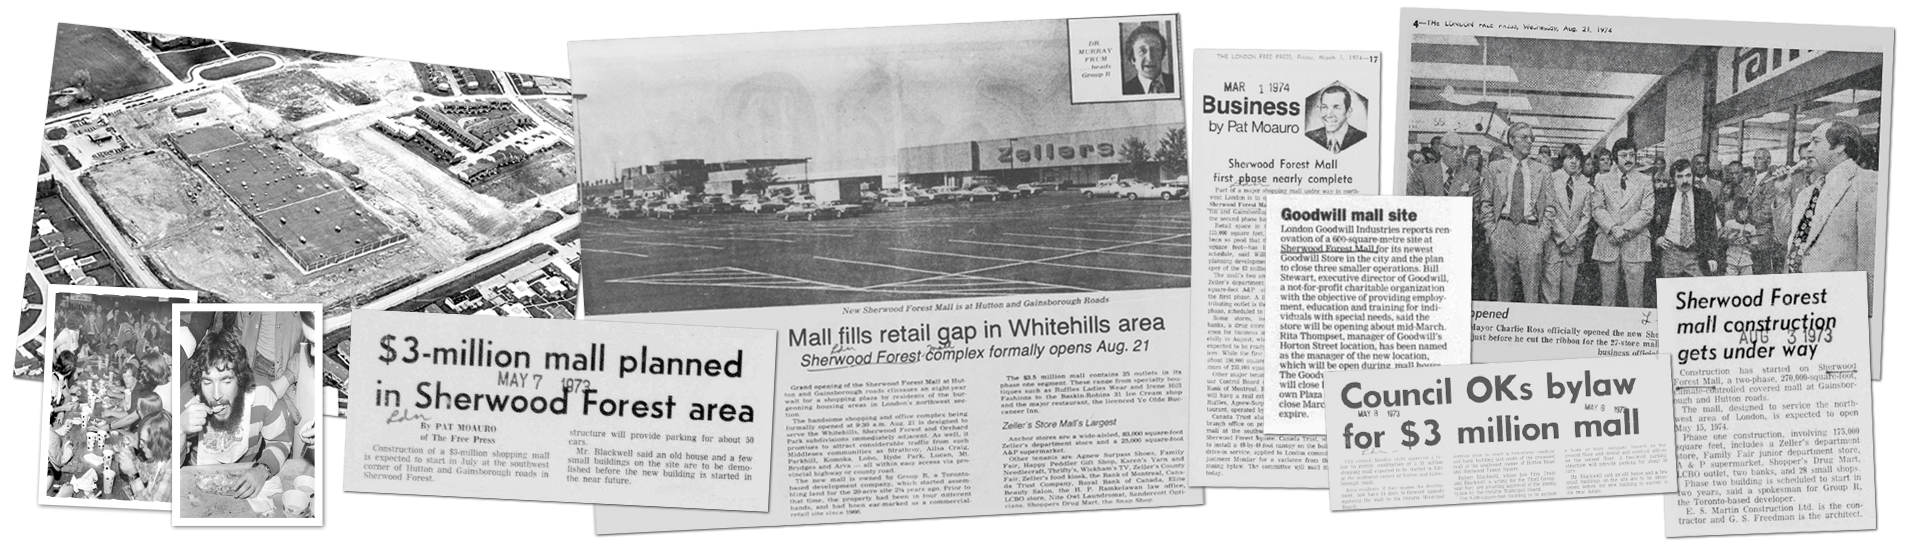 Sherwood Forest Mall Newspaper Clippings Banner